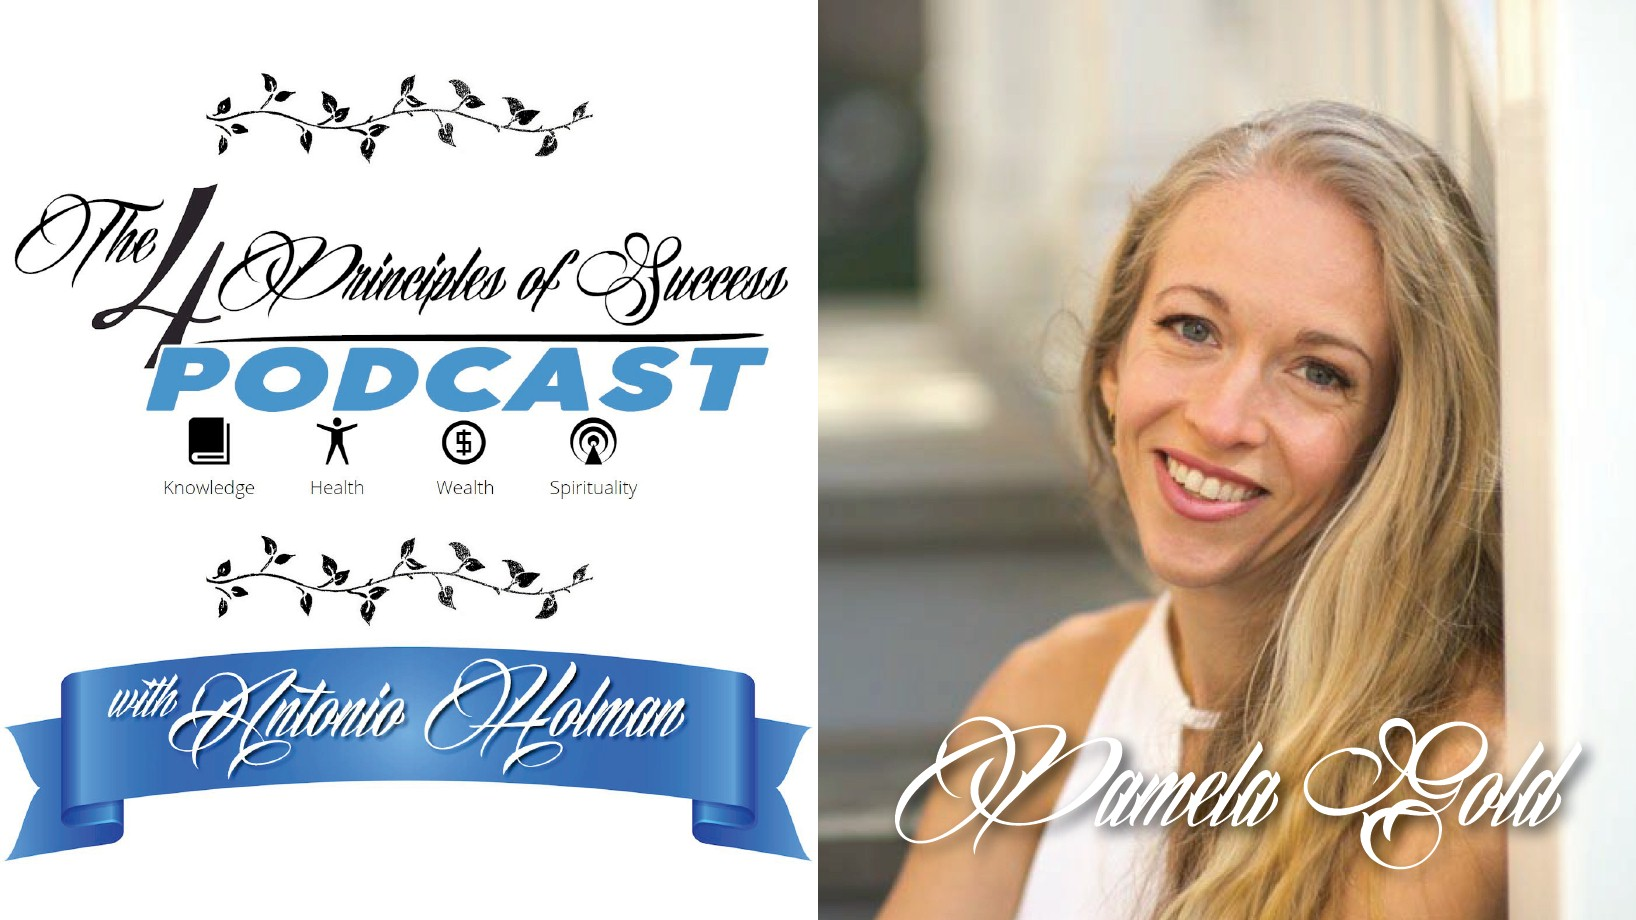 The 4 Principles of Success with Antonio Holman featuring Pamela Gold